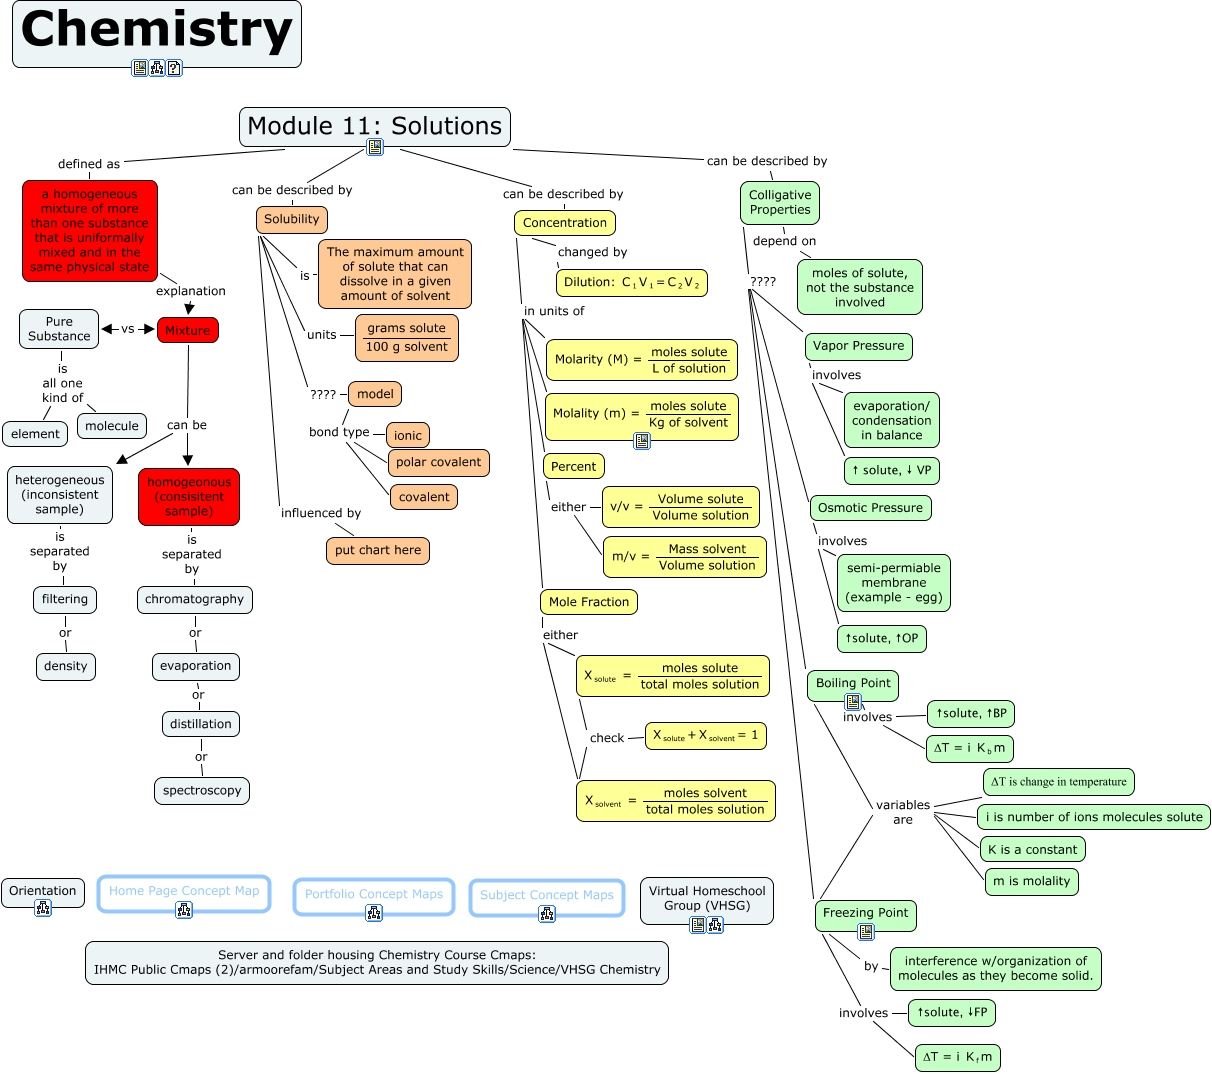 Stoichiometry Concept Map.Apologia Ed 1 Module 11 Concept Map What Is Covered In Module 11